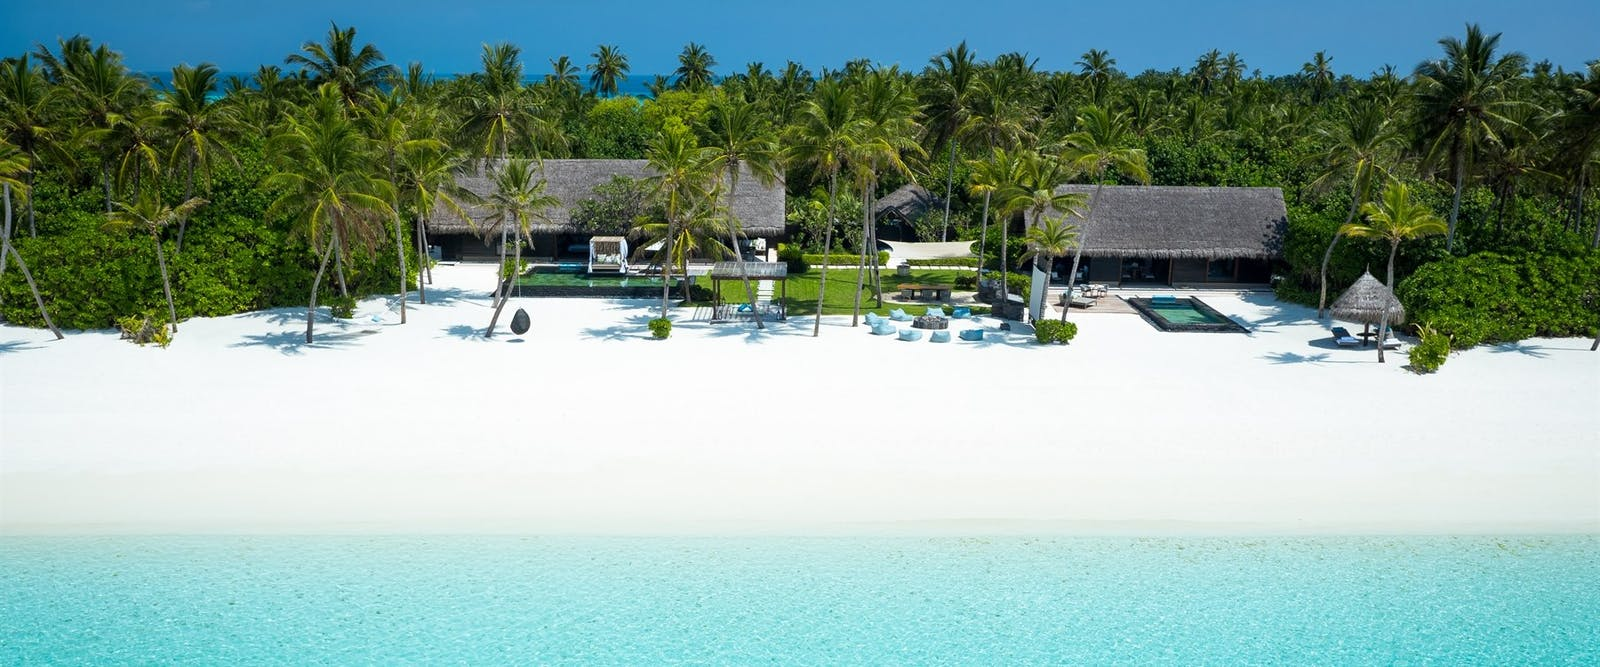 Grand Sunset Residence at One&Only Reethi Rah, Maldives, Indian Ocean